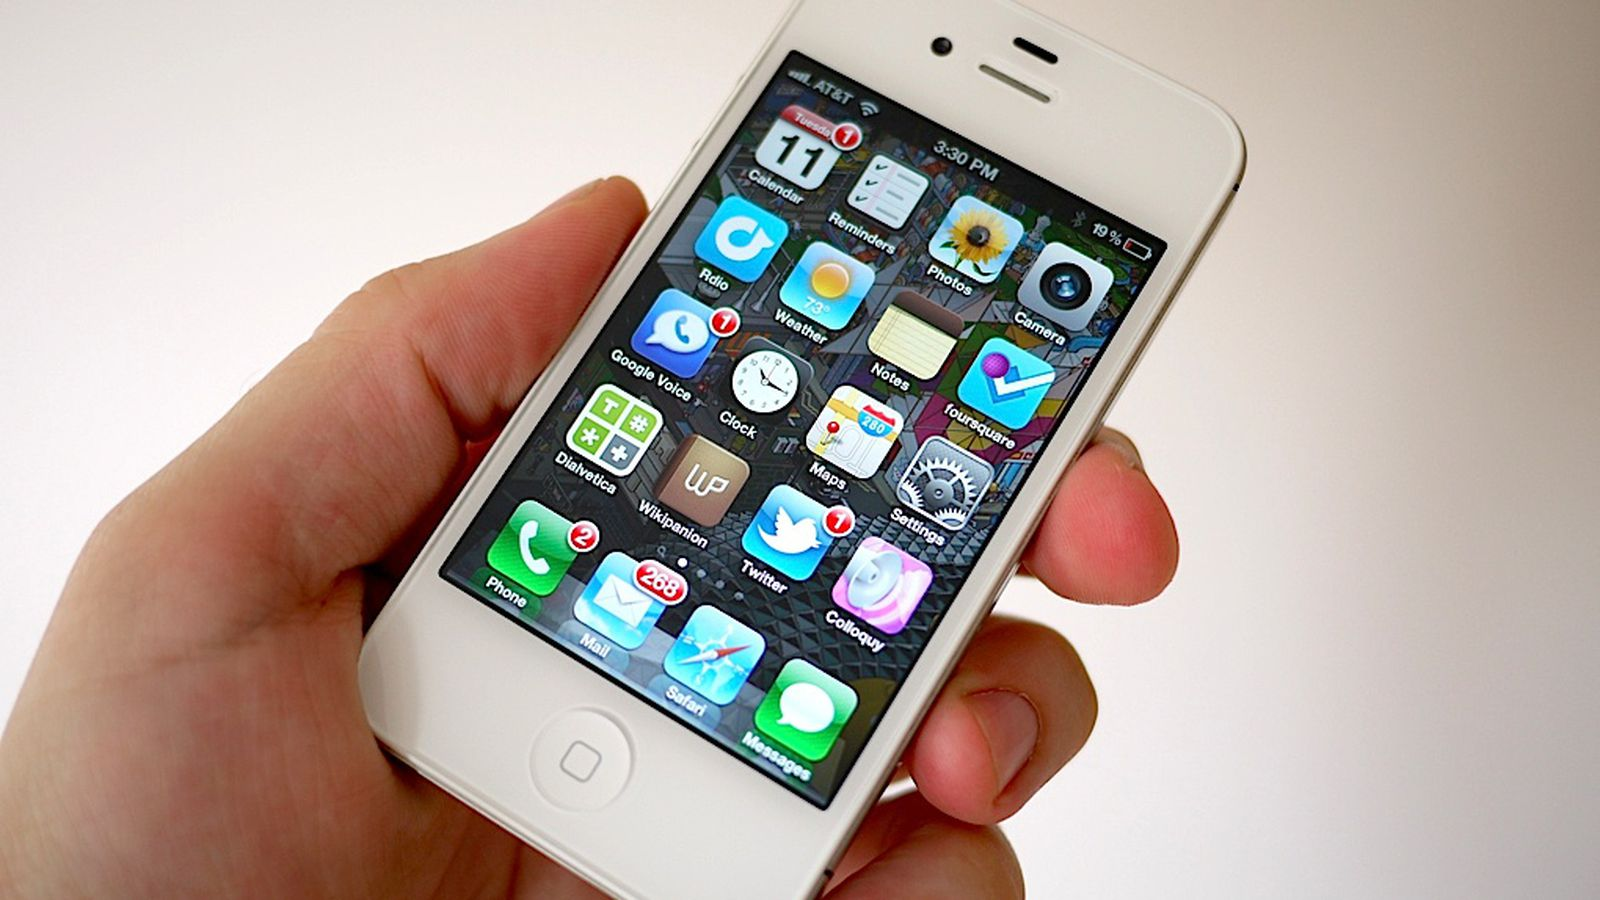 iphone 5 review iphone 4s review the verge 11034